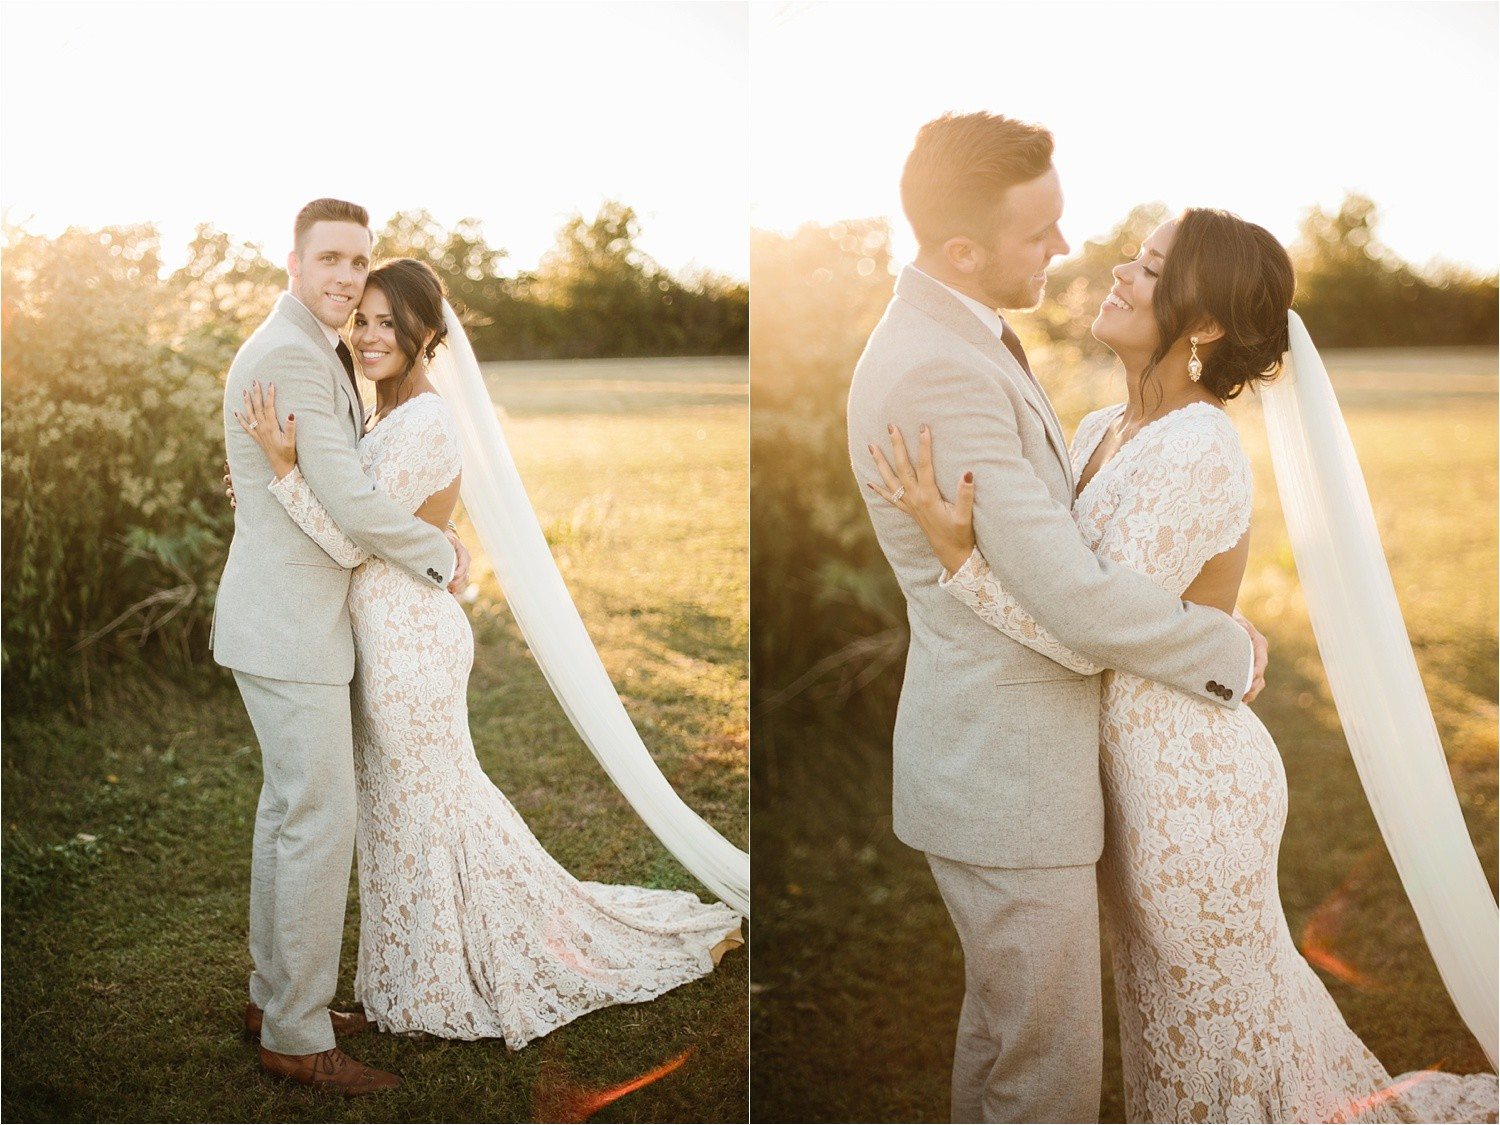 mallory-tyler-__-an-intimate-after-session-at-grapevine-lake-by-north-texas-wedding-photographer-rachel-meagan-photography-_-21